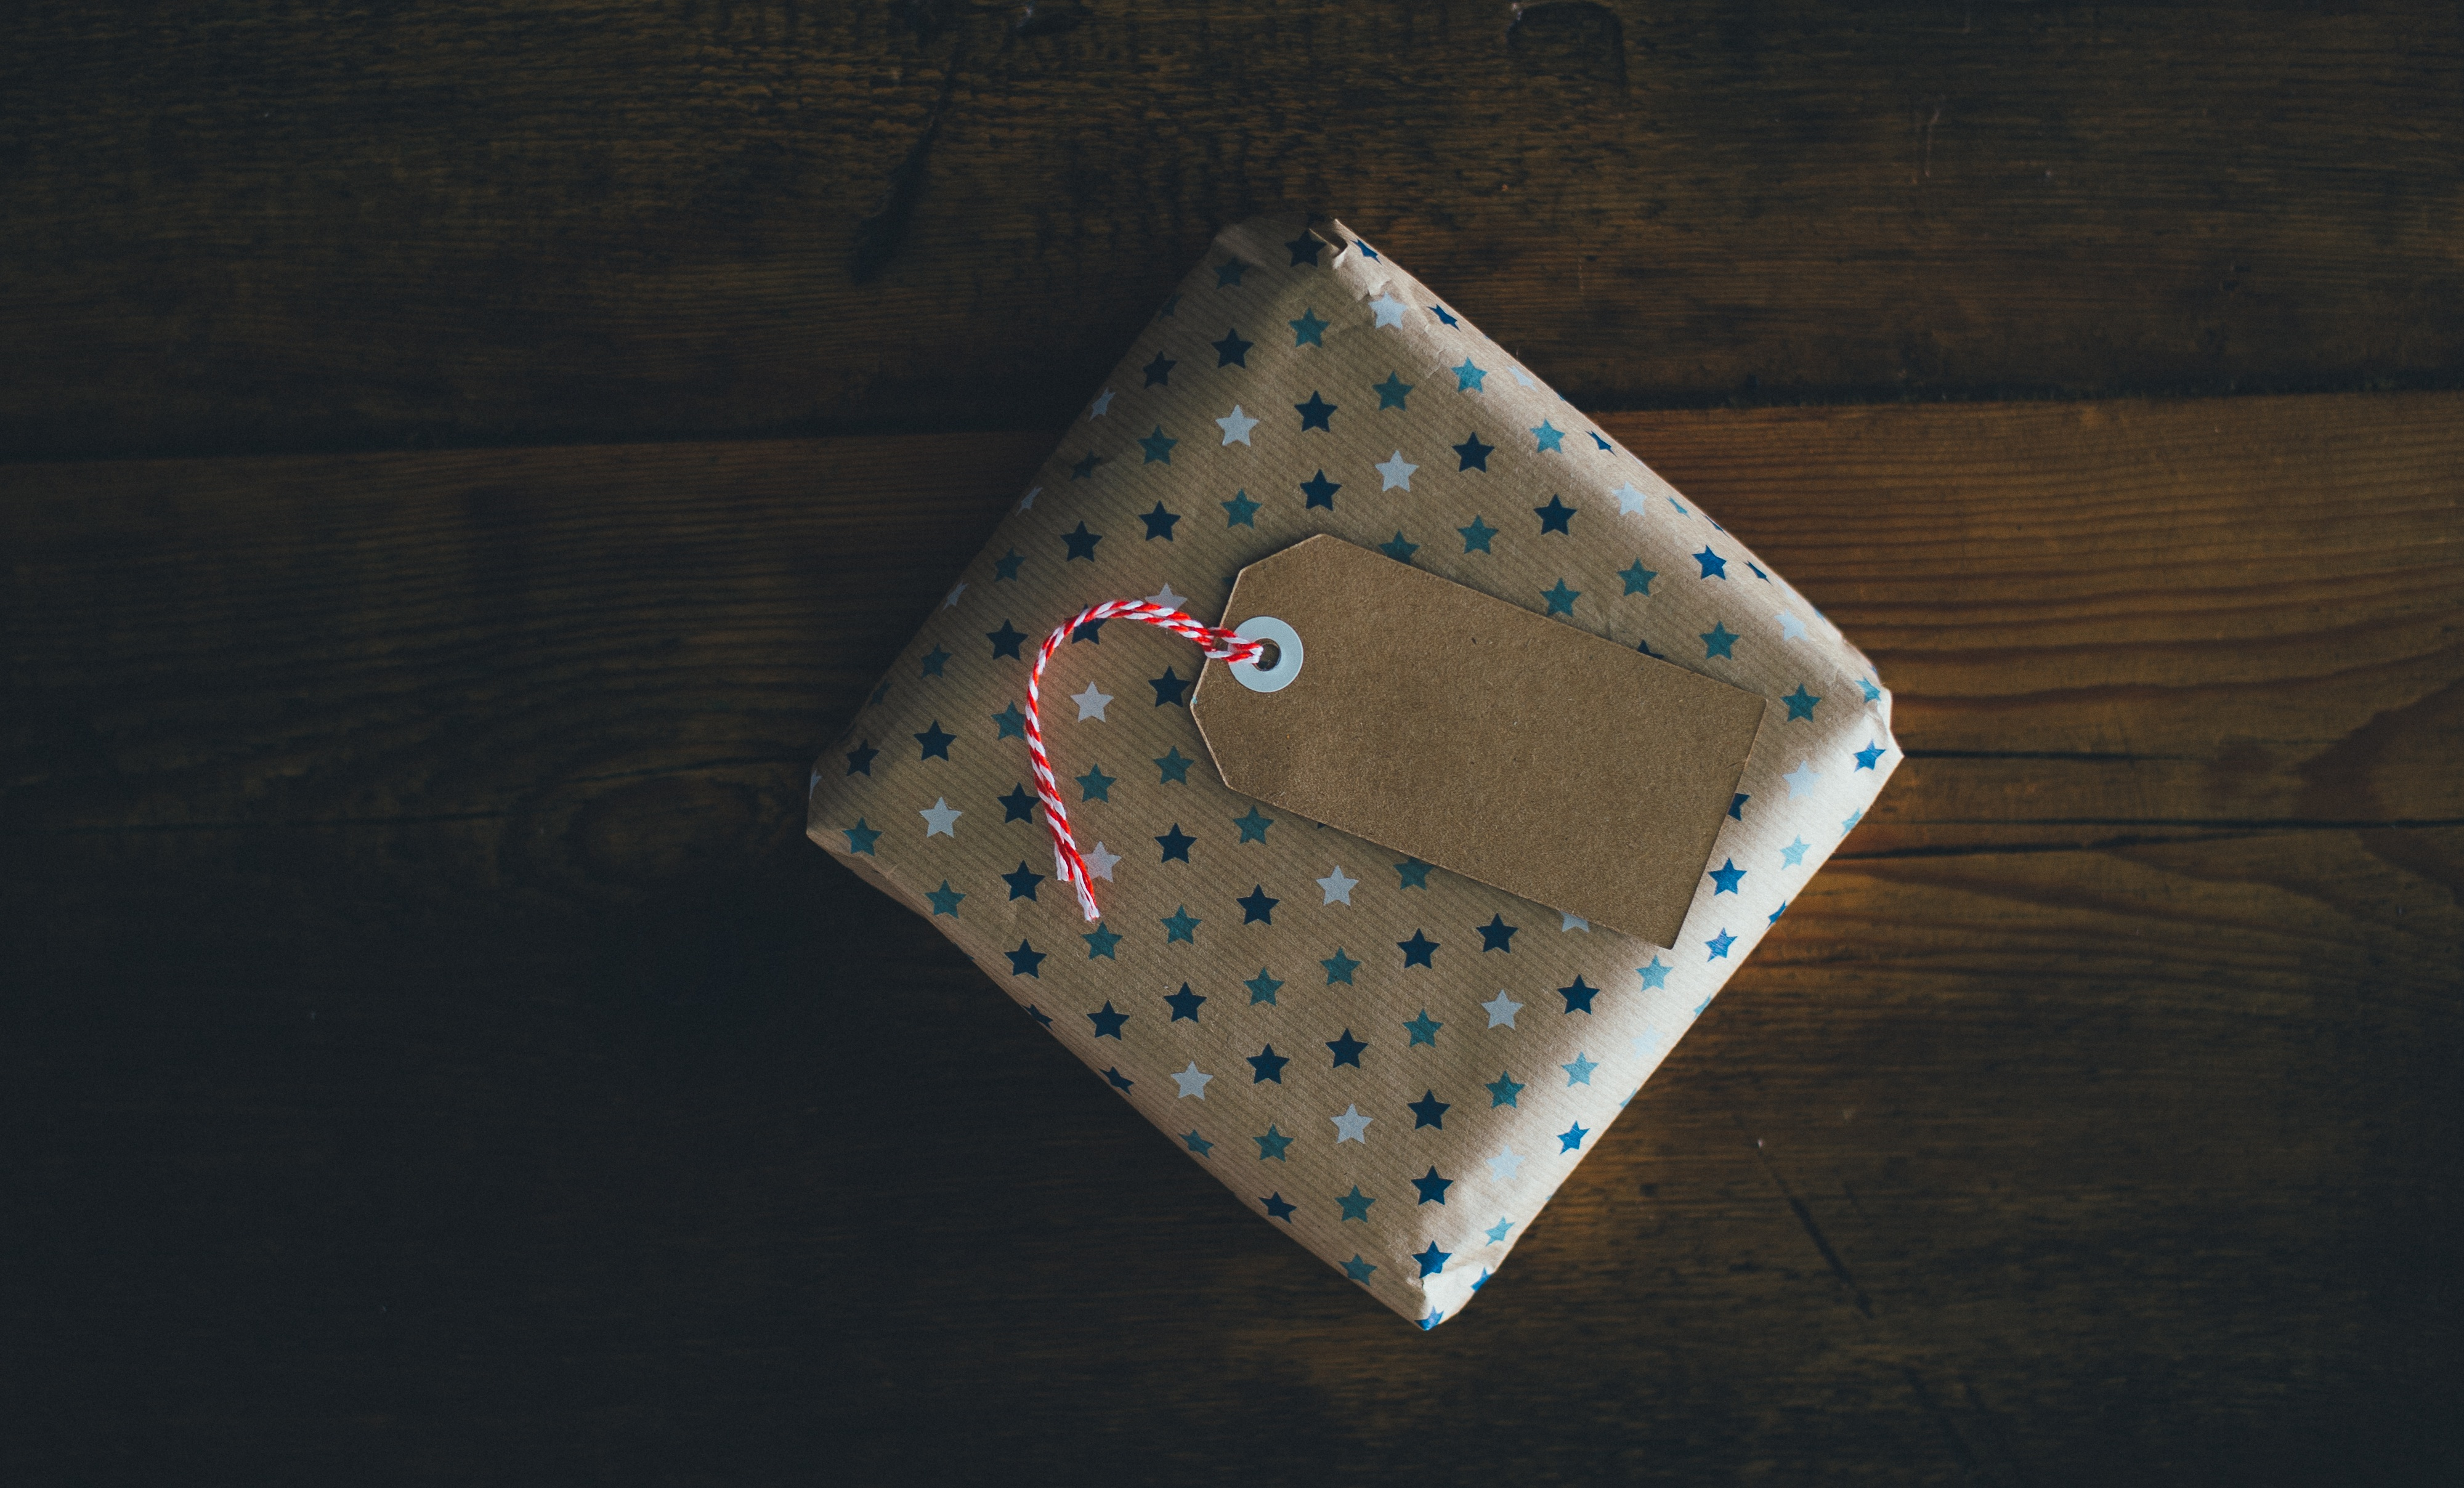 A wrapped gift.